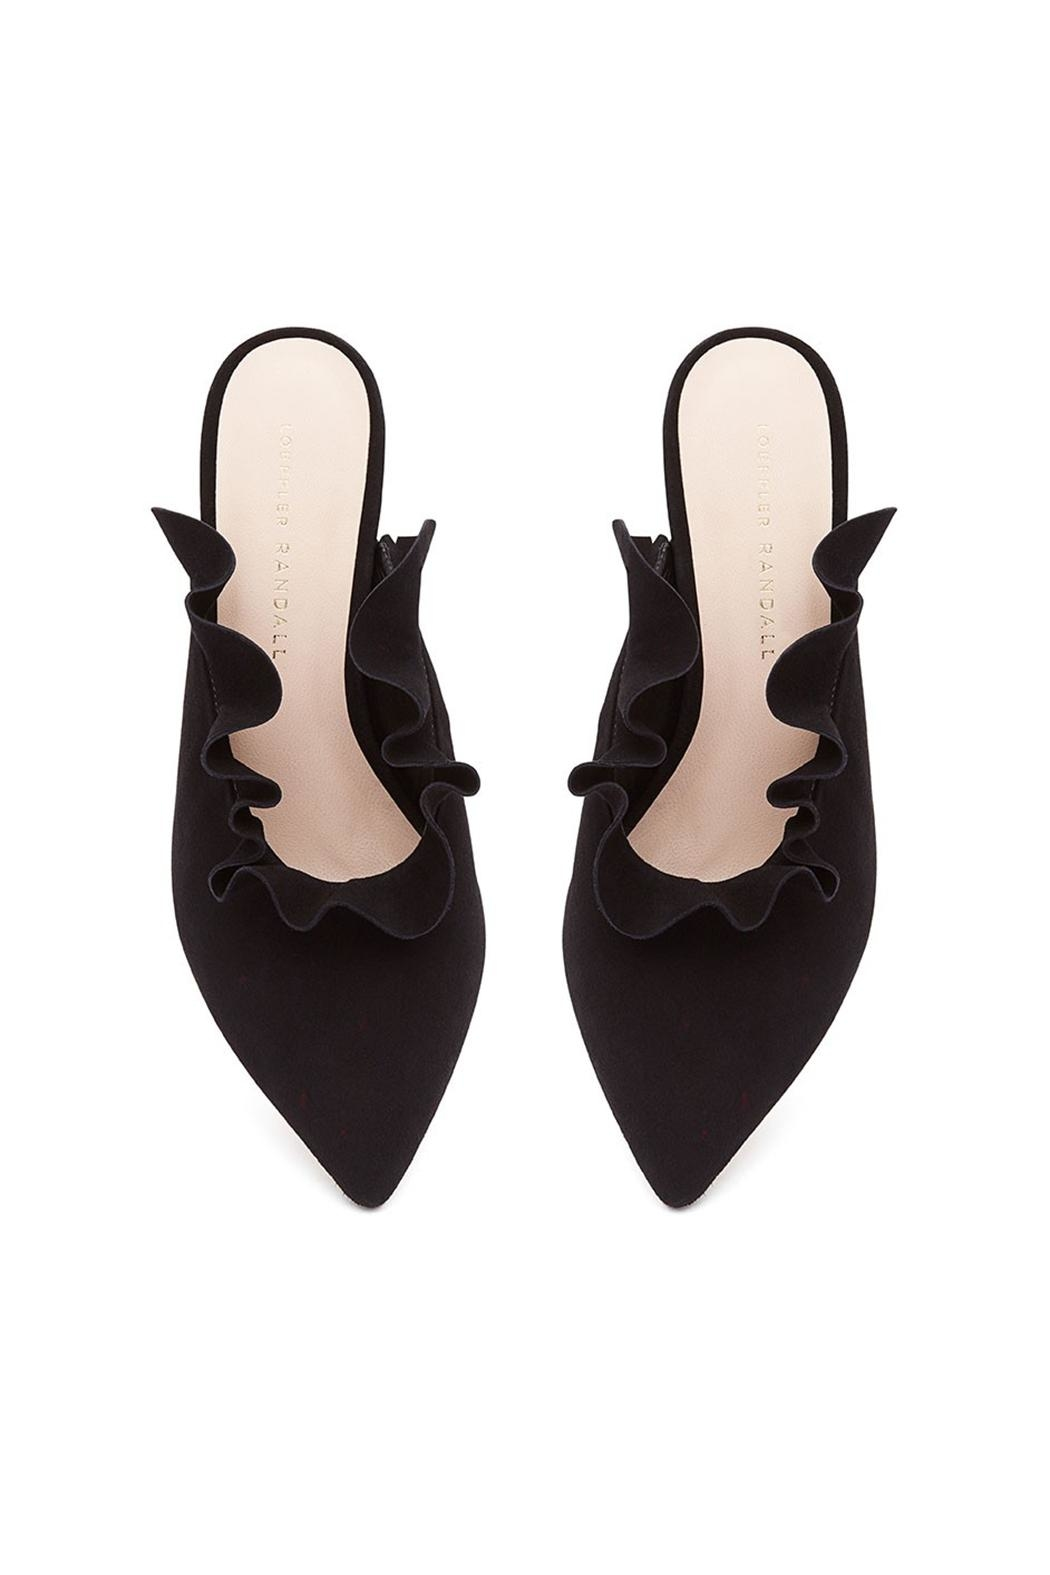 Loeffler Randall Langley Suede Mules - Front Full Image